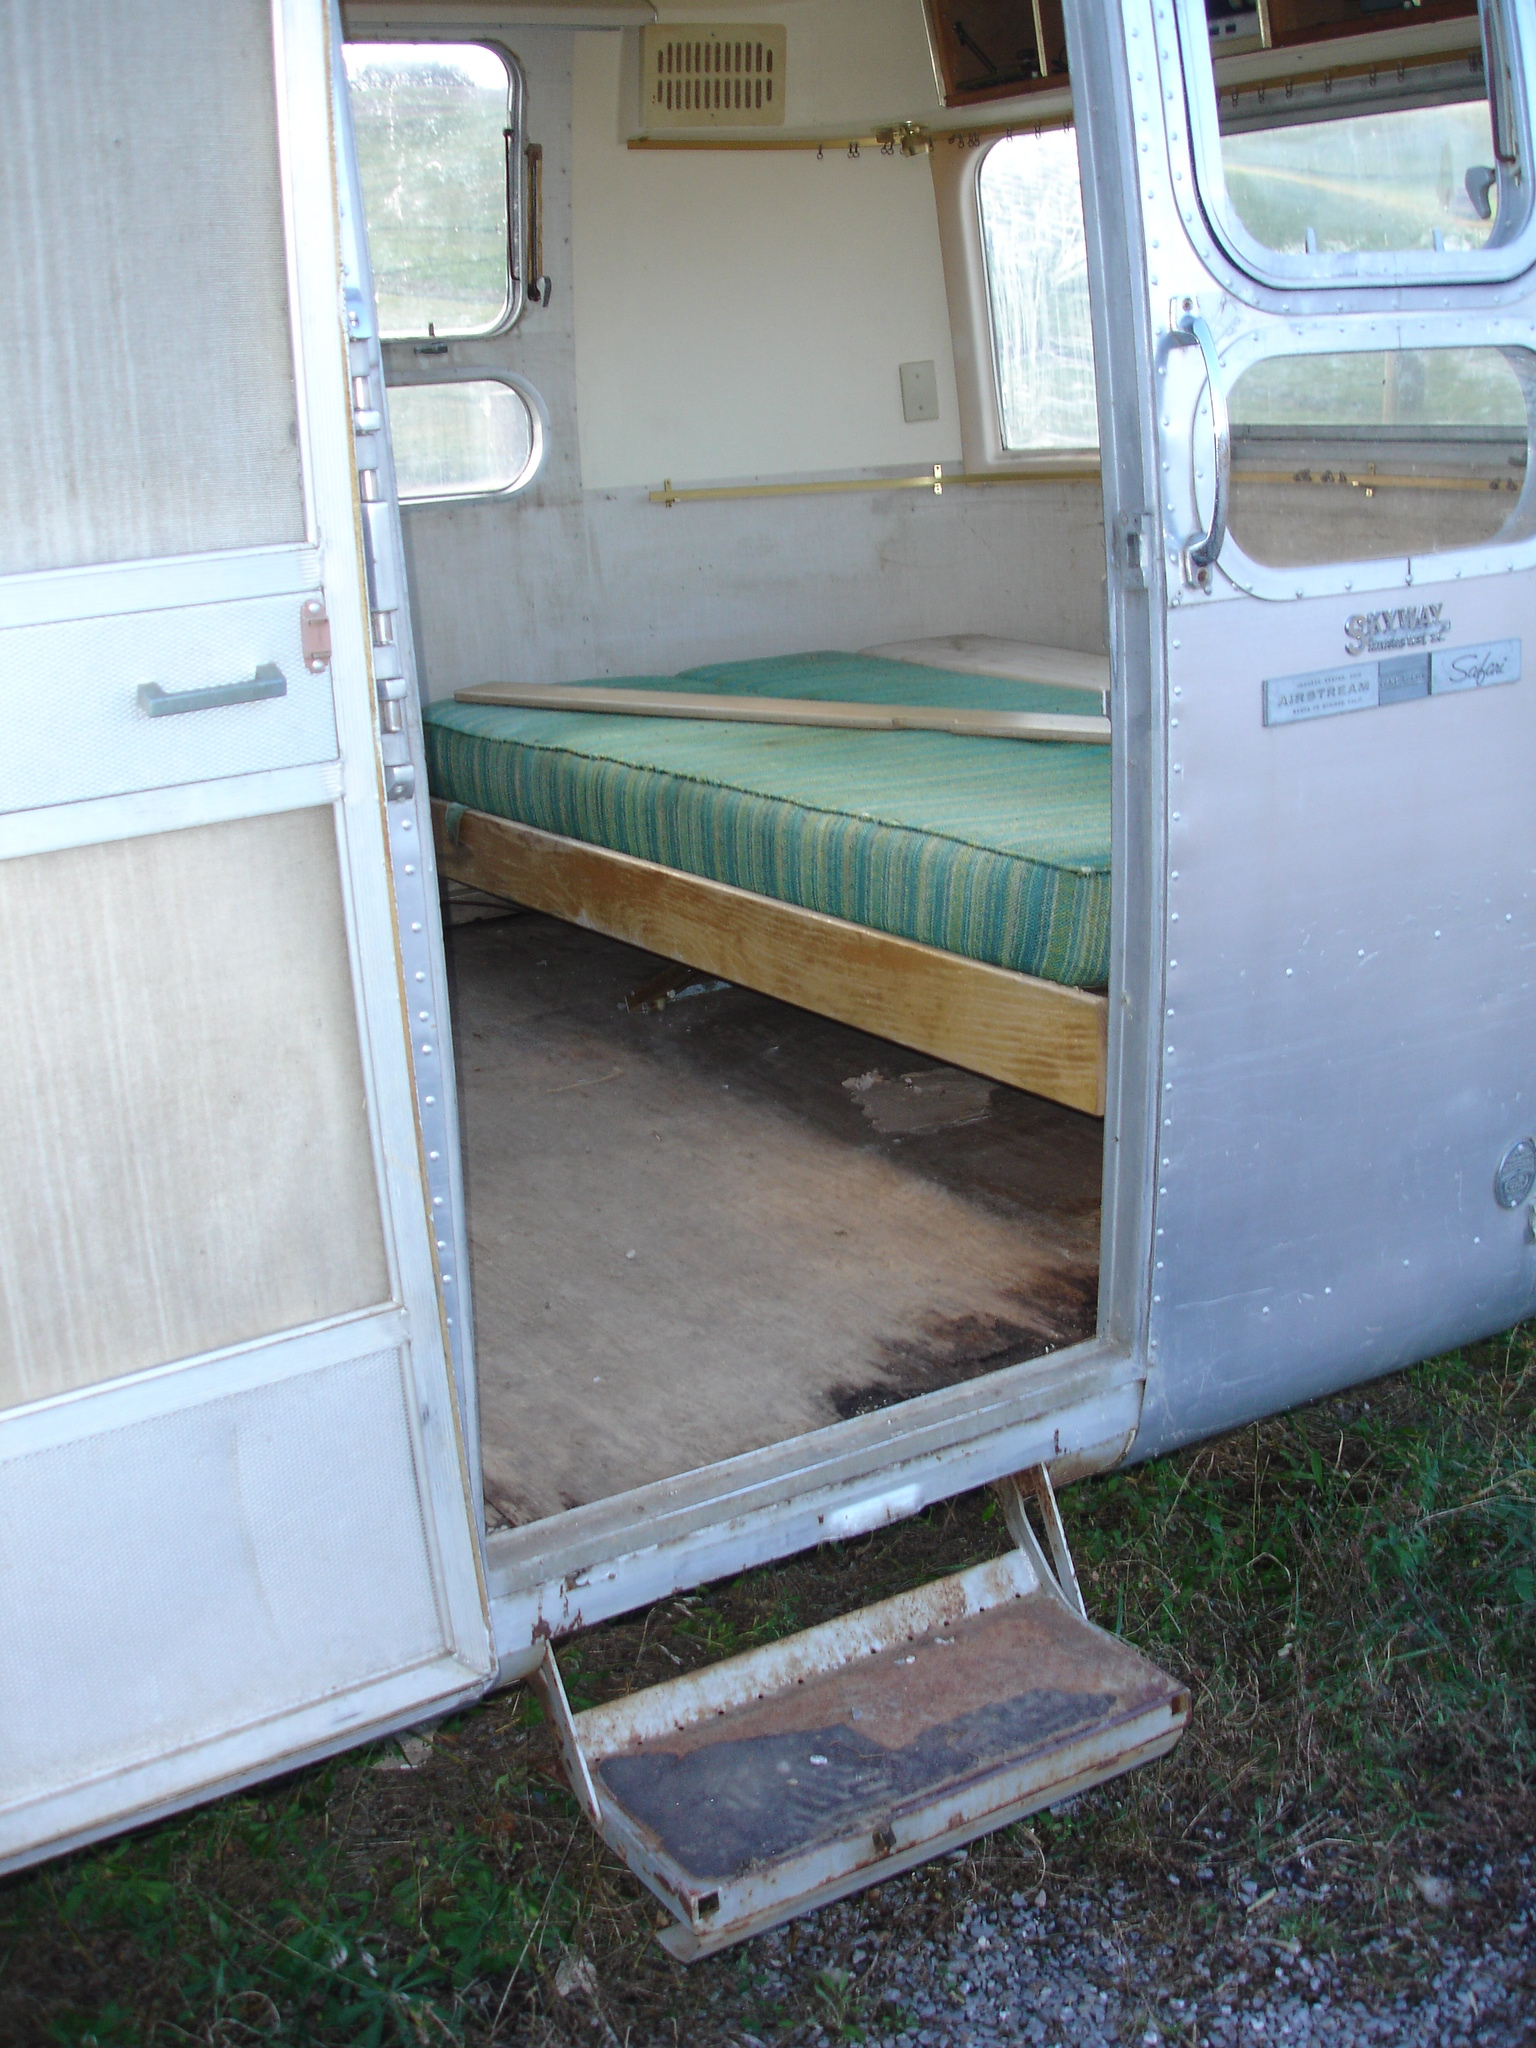 Original Airstream gaucho